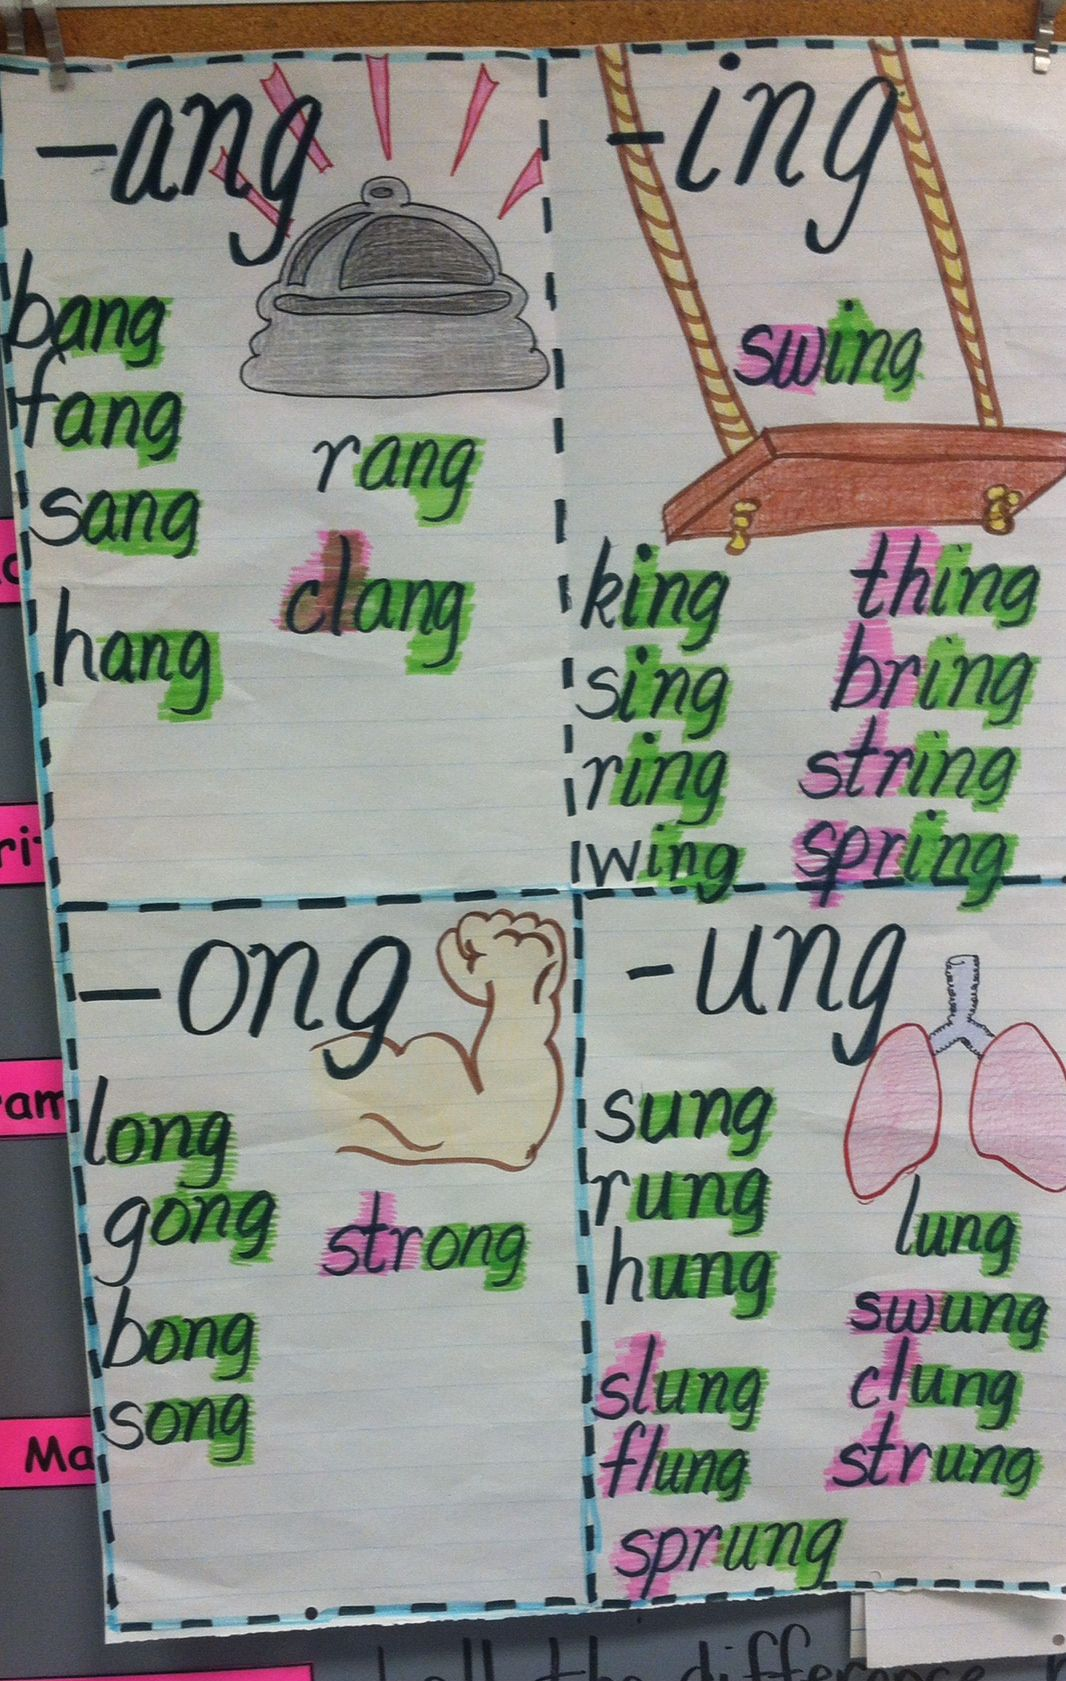 Word Study Ng Word Family Love This Image Only